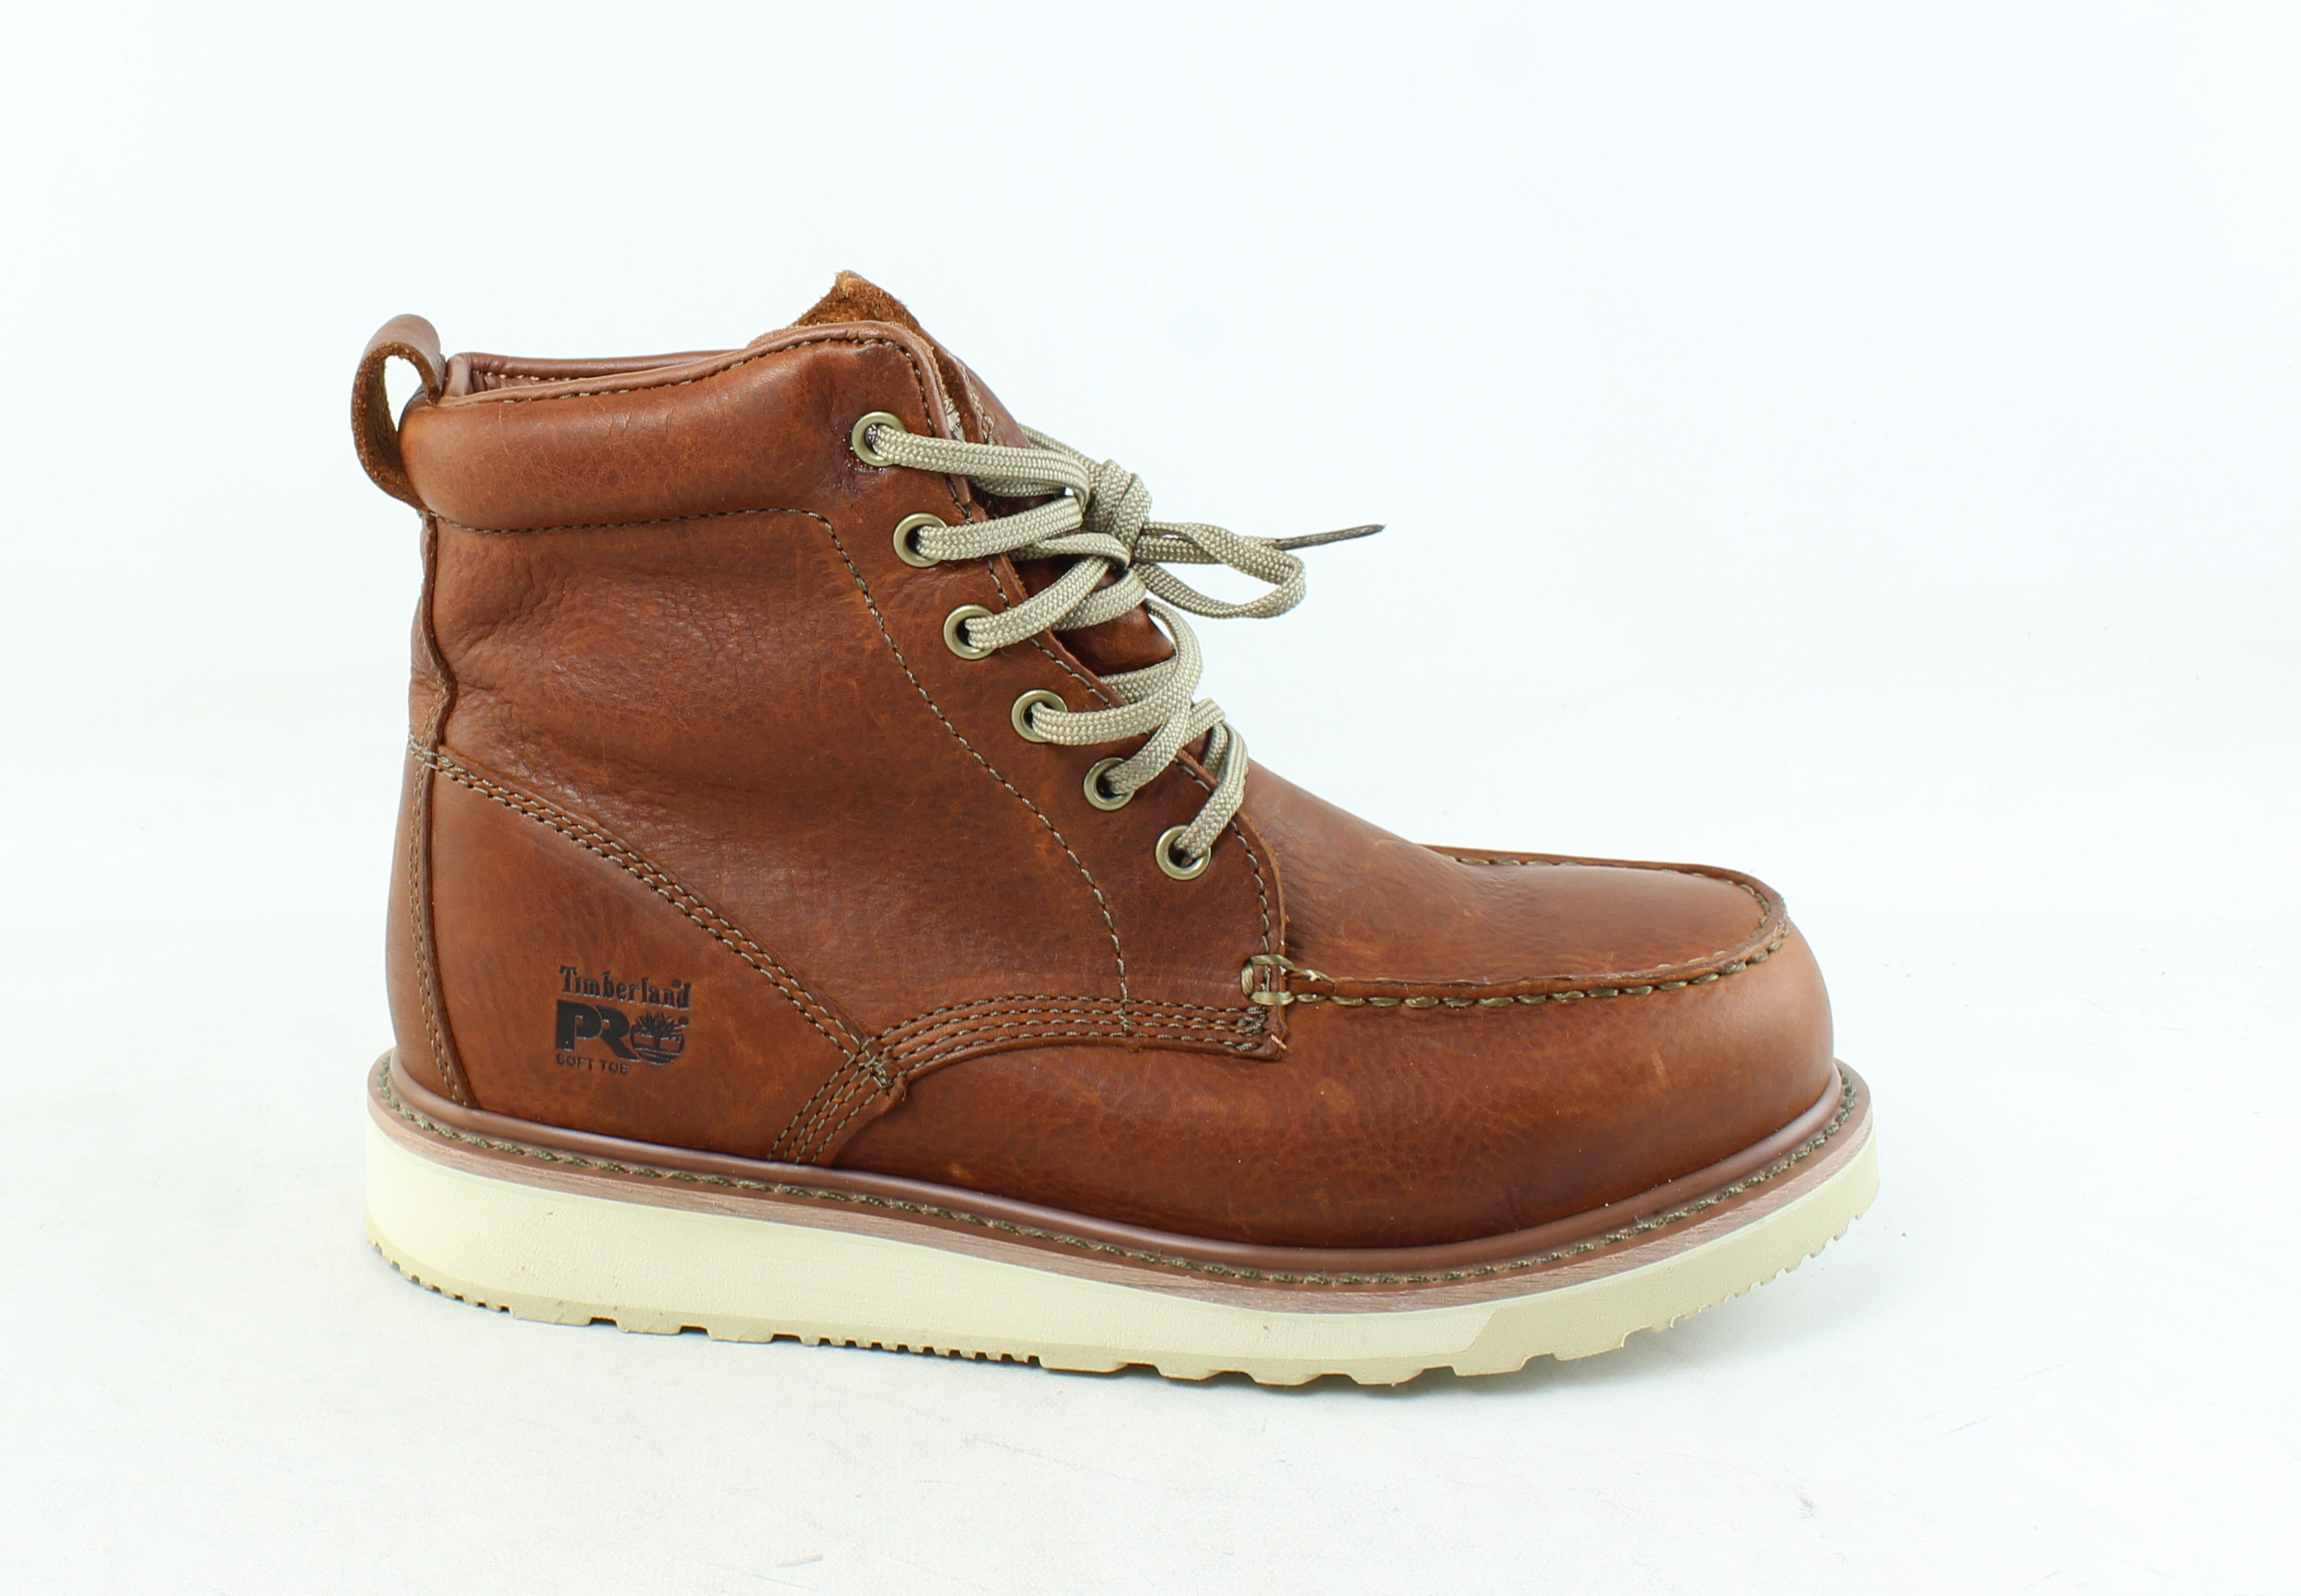 931fb29b8a1 Details about Timberland PRO Mens Wedge Sole 6 Rust Work   Safety Boots  Size 8 (280144)